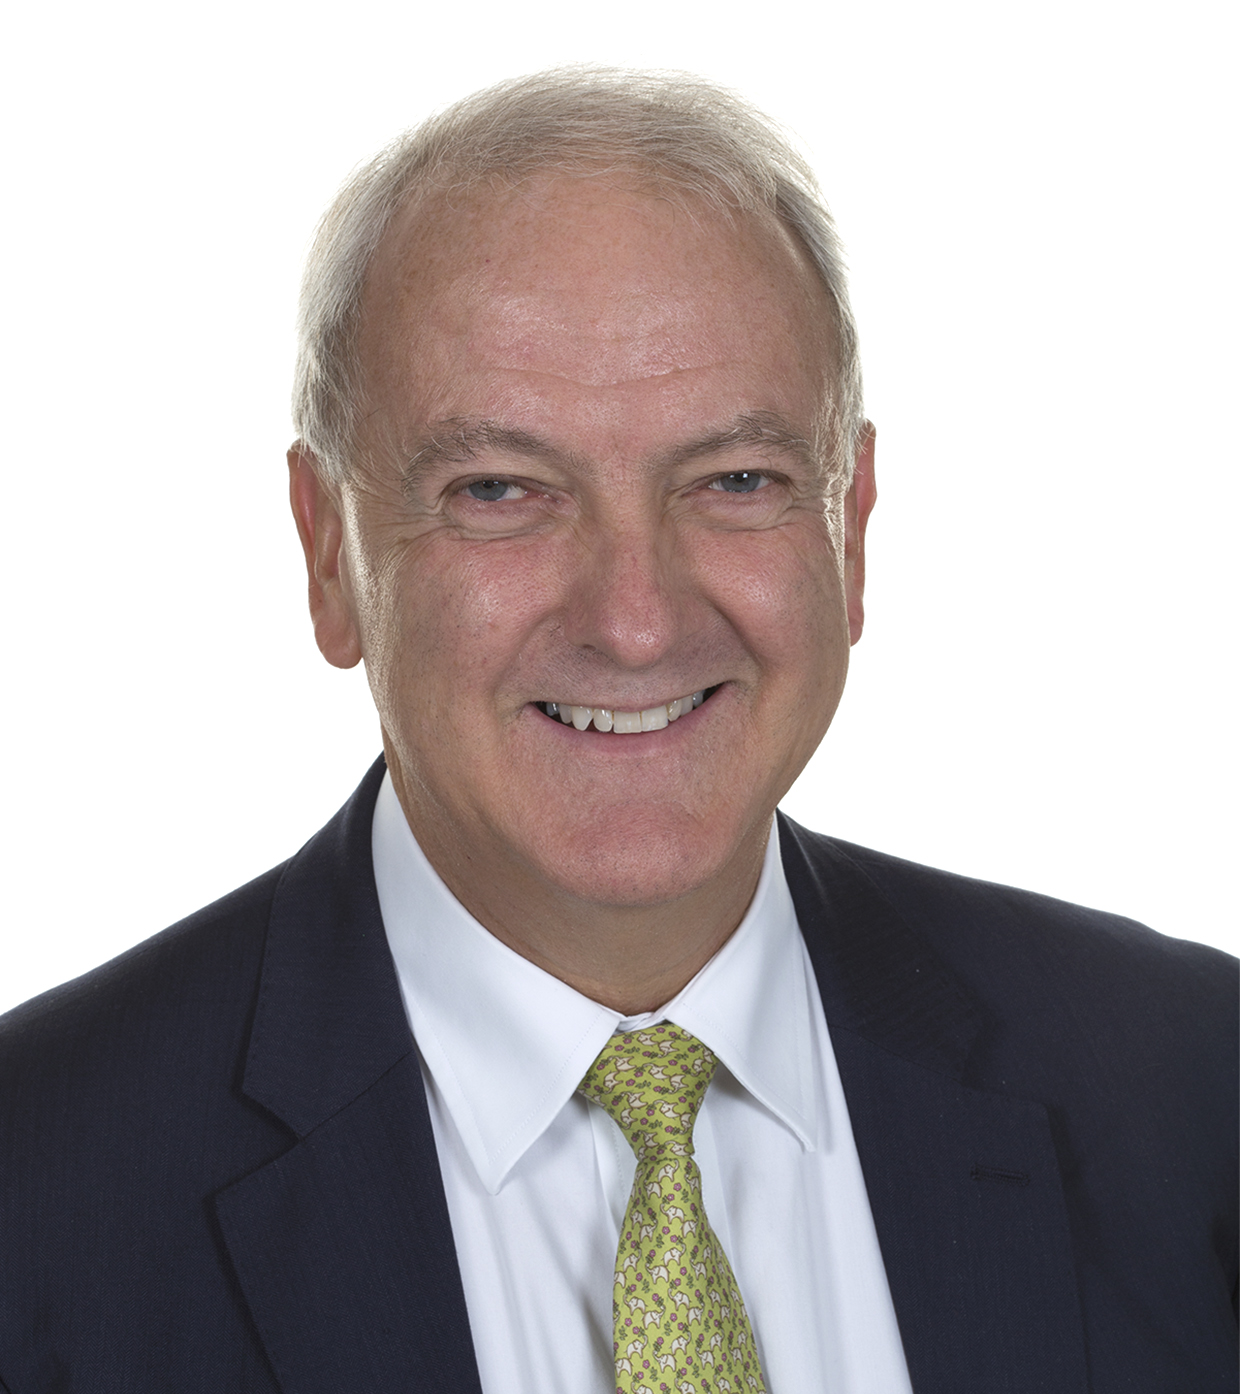 Professor Sir Bruce Keogh